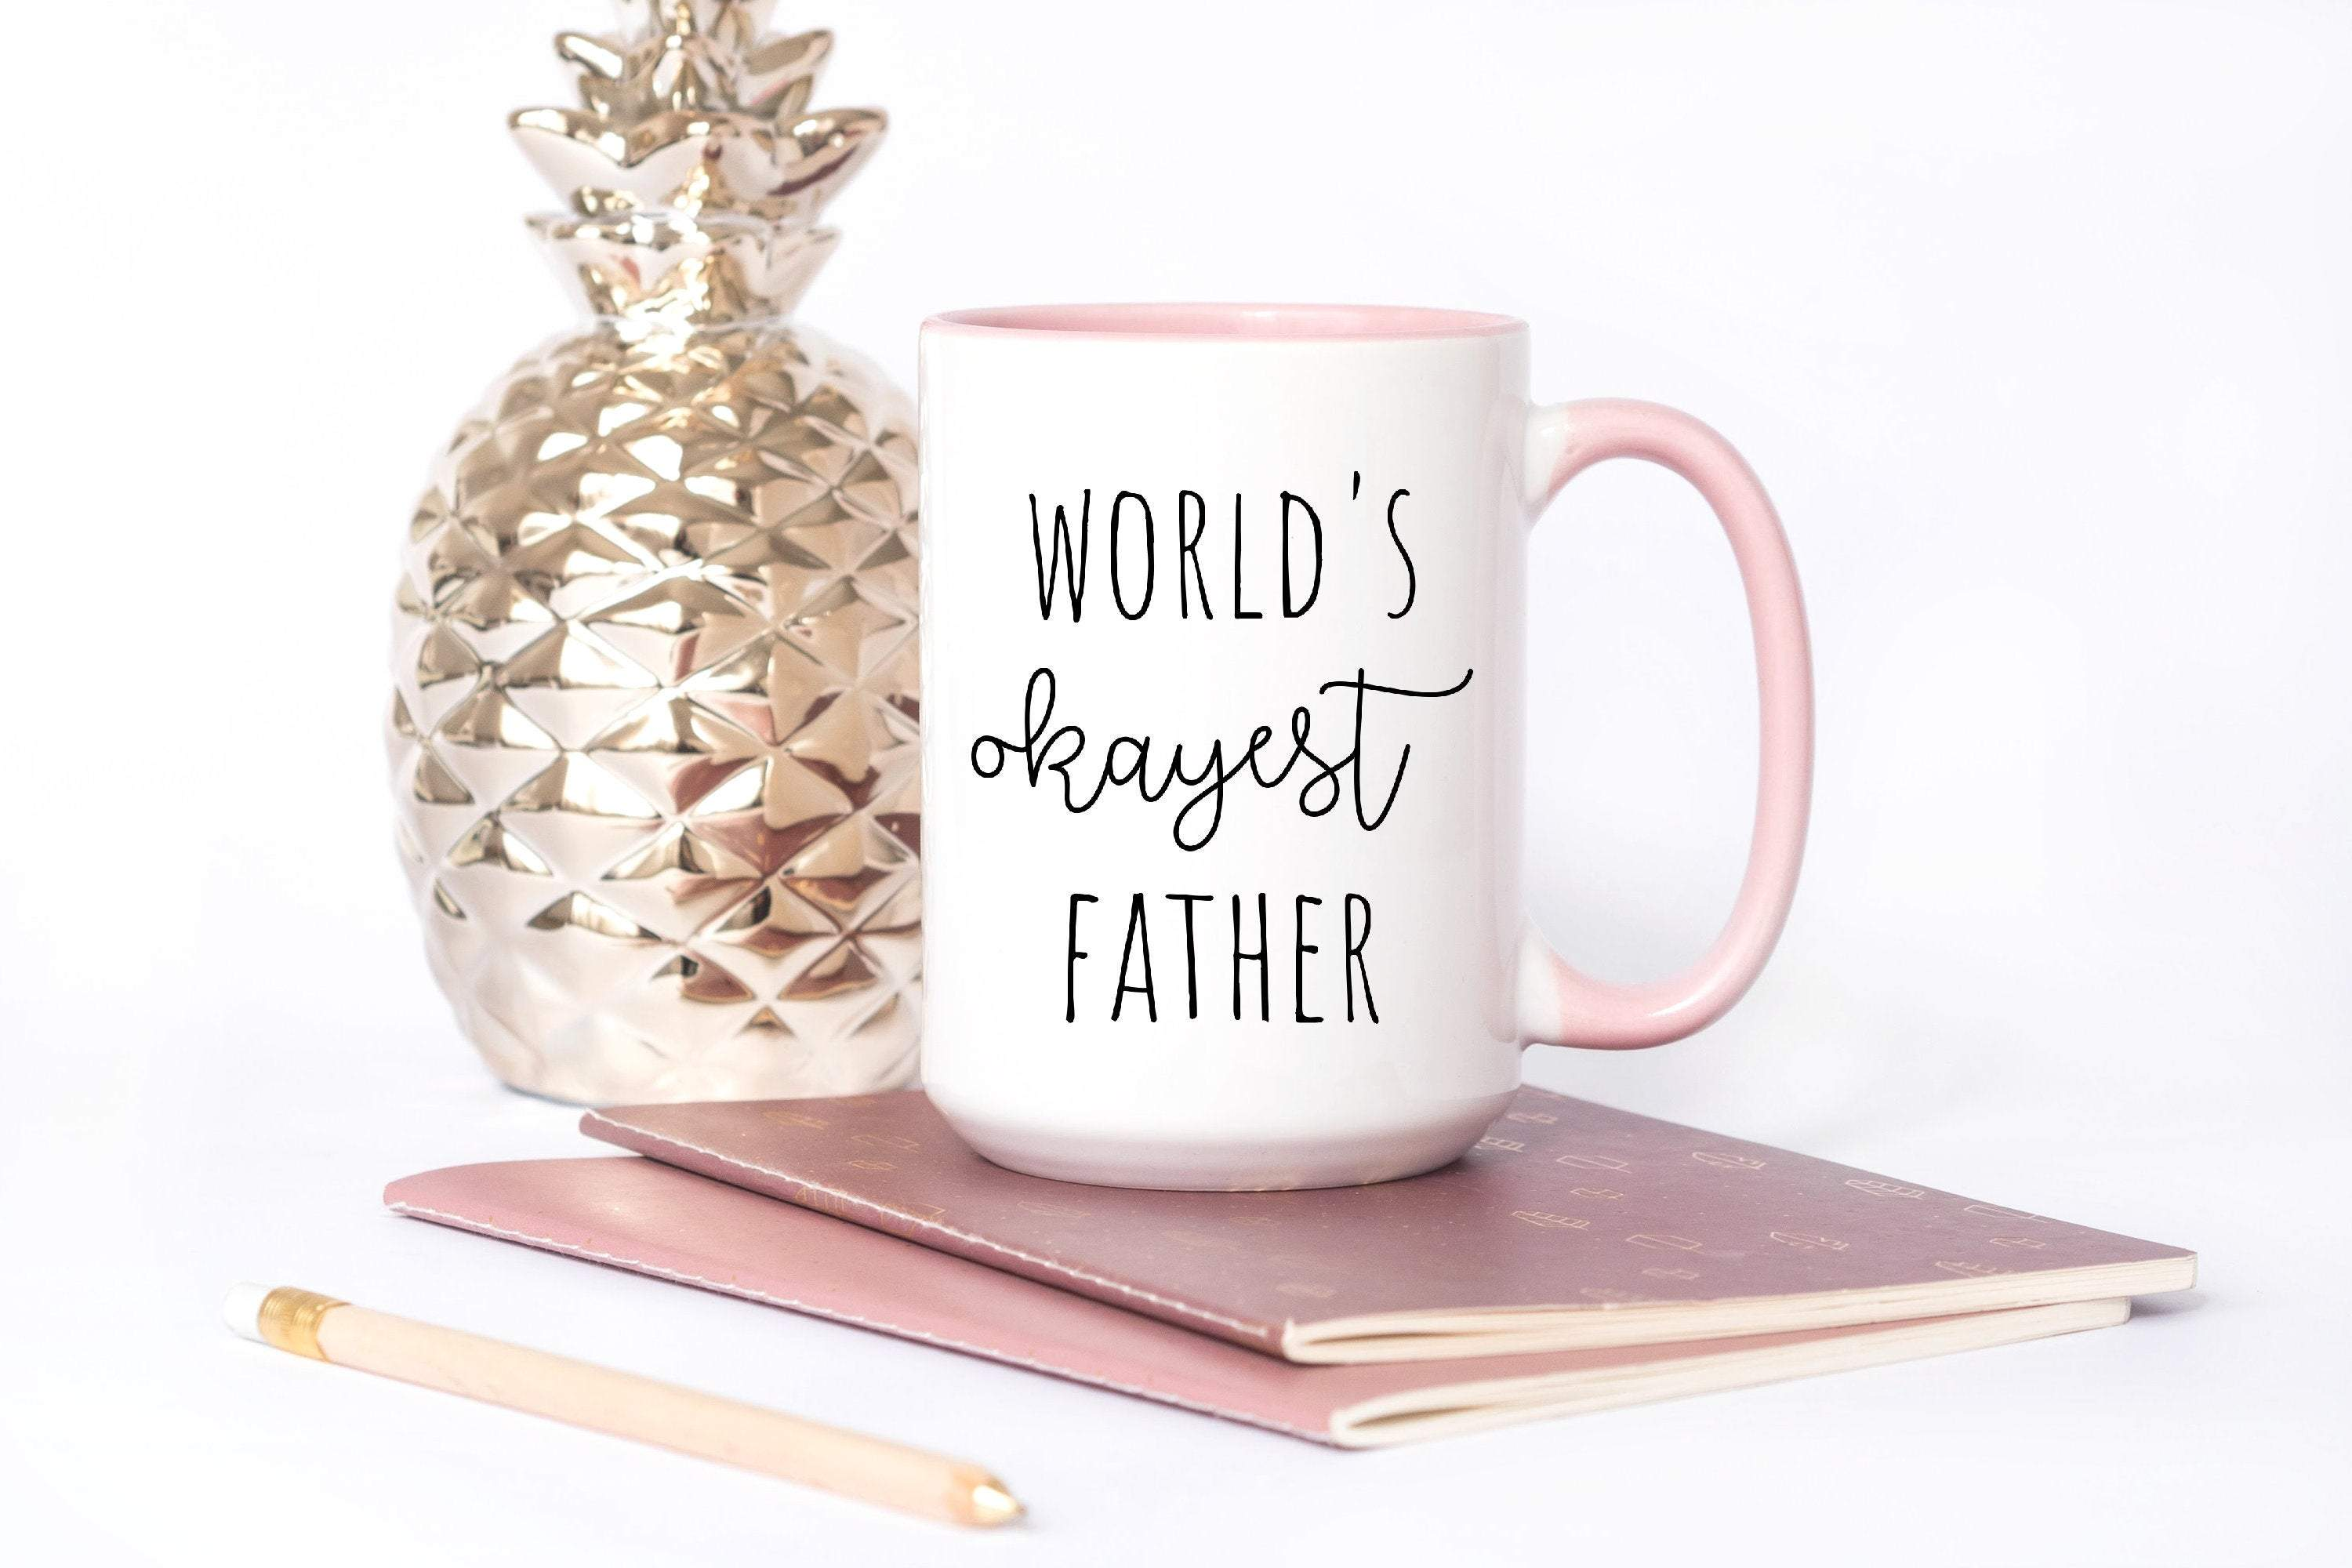 World okayest father coffee mug